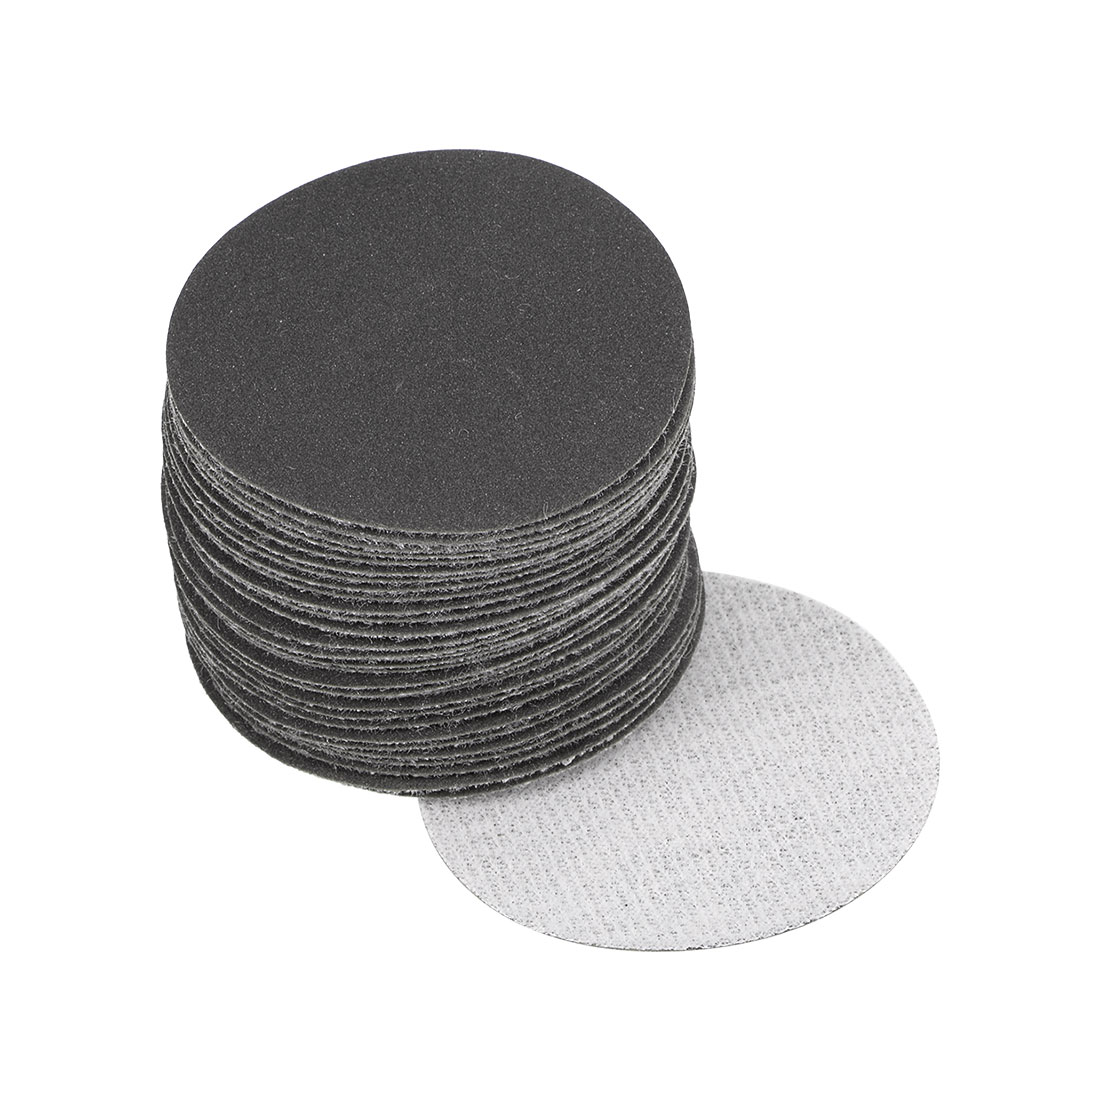 2 inch Wet Dry Discs 400 Grit Hook and Loop Sanding Disc Silicon Carbide 30pcs